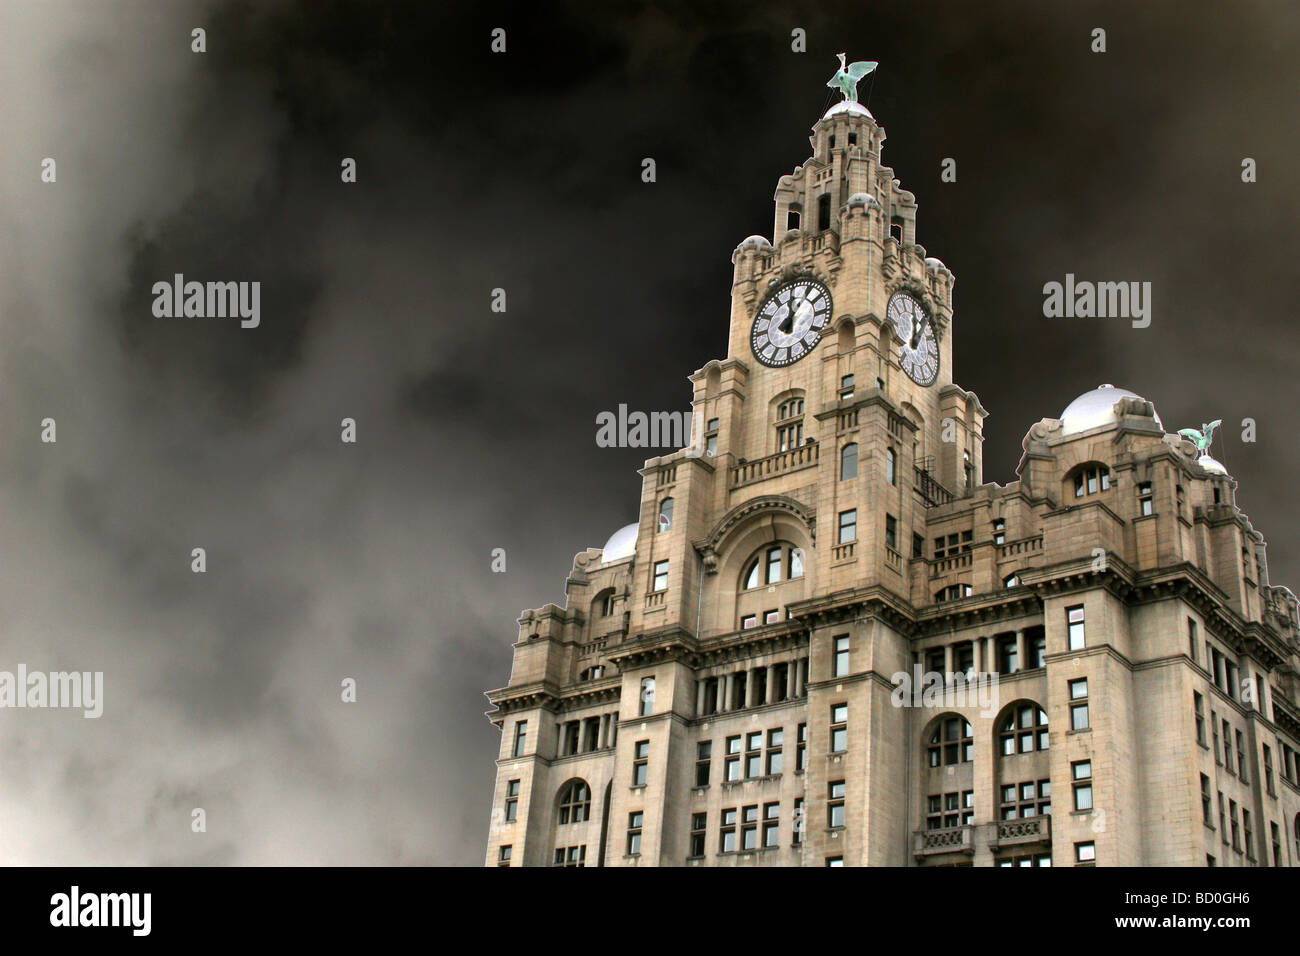 The Royal Liver Building, Pier Head, Liverpool, Merseyside, UK - Stock Image